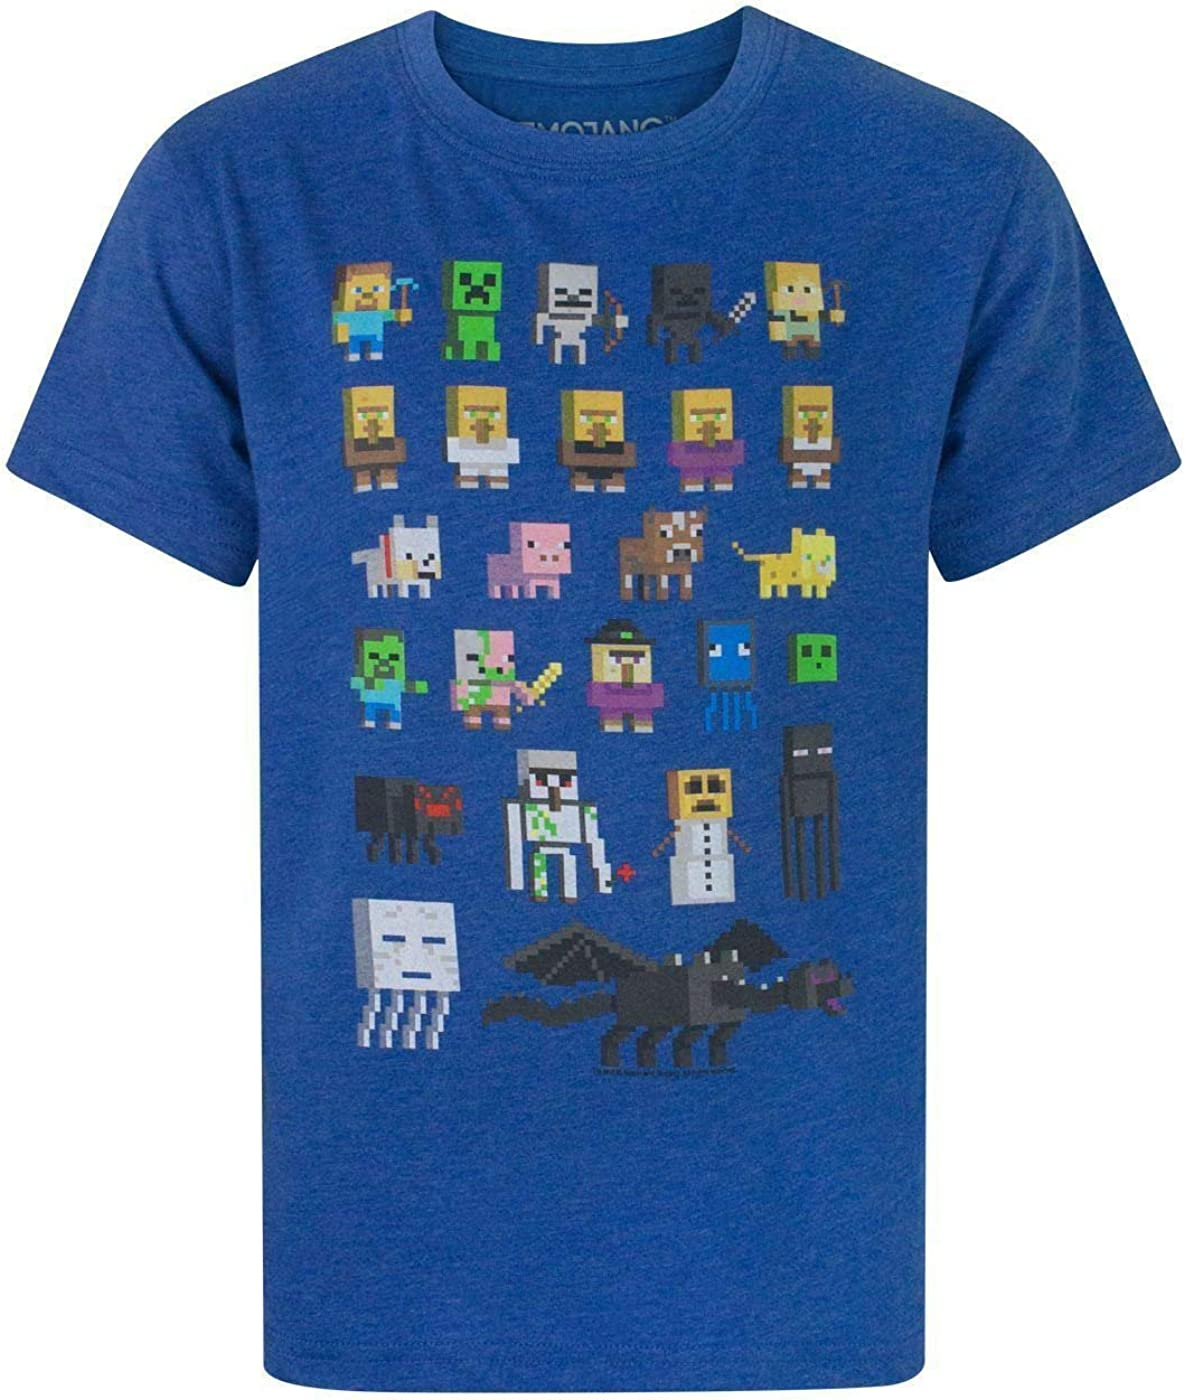 Minecraft Adventure Girl/'s Blue T-Shirt UK Sizes 3 to 15 Years